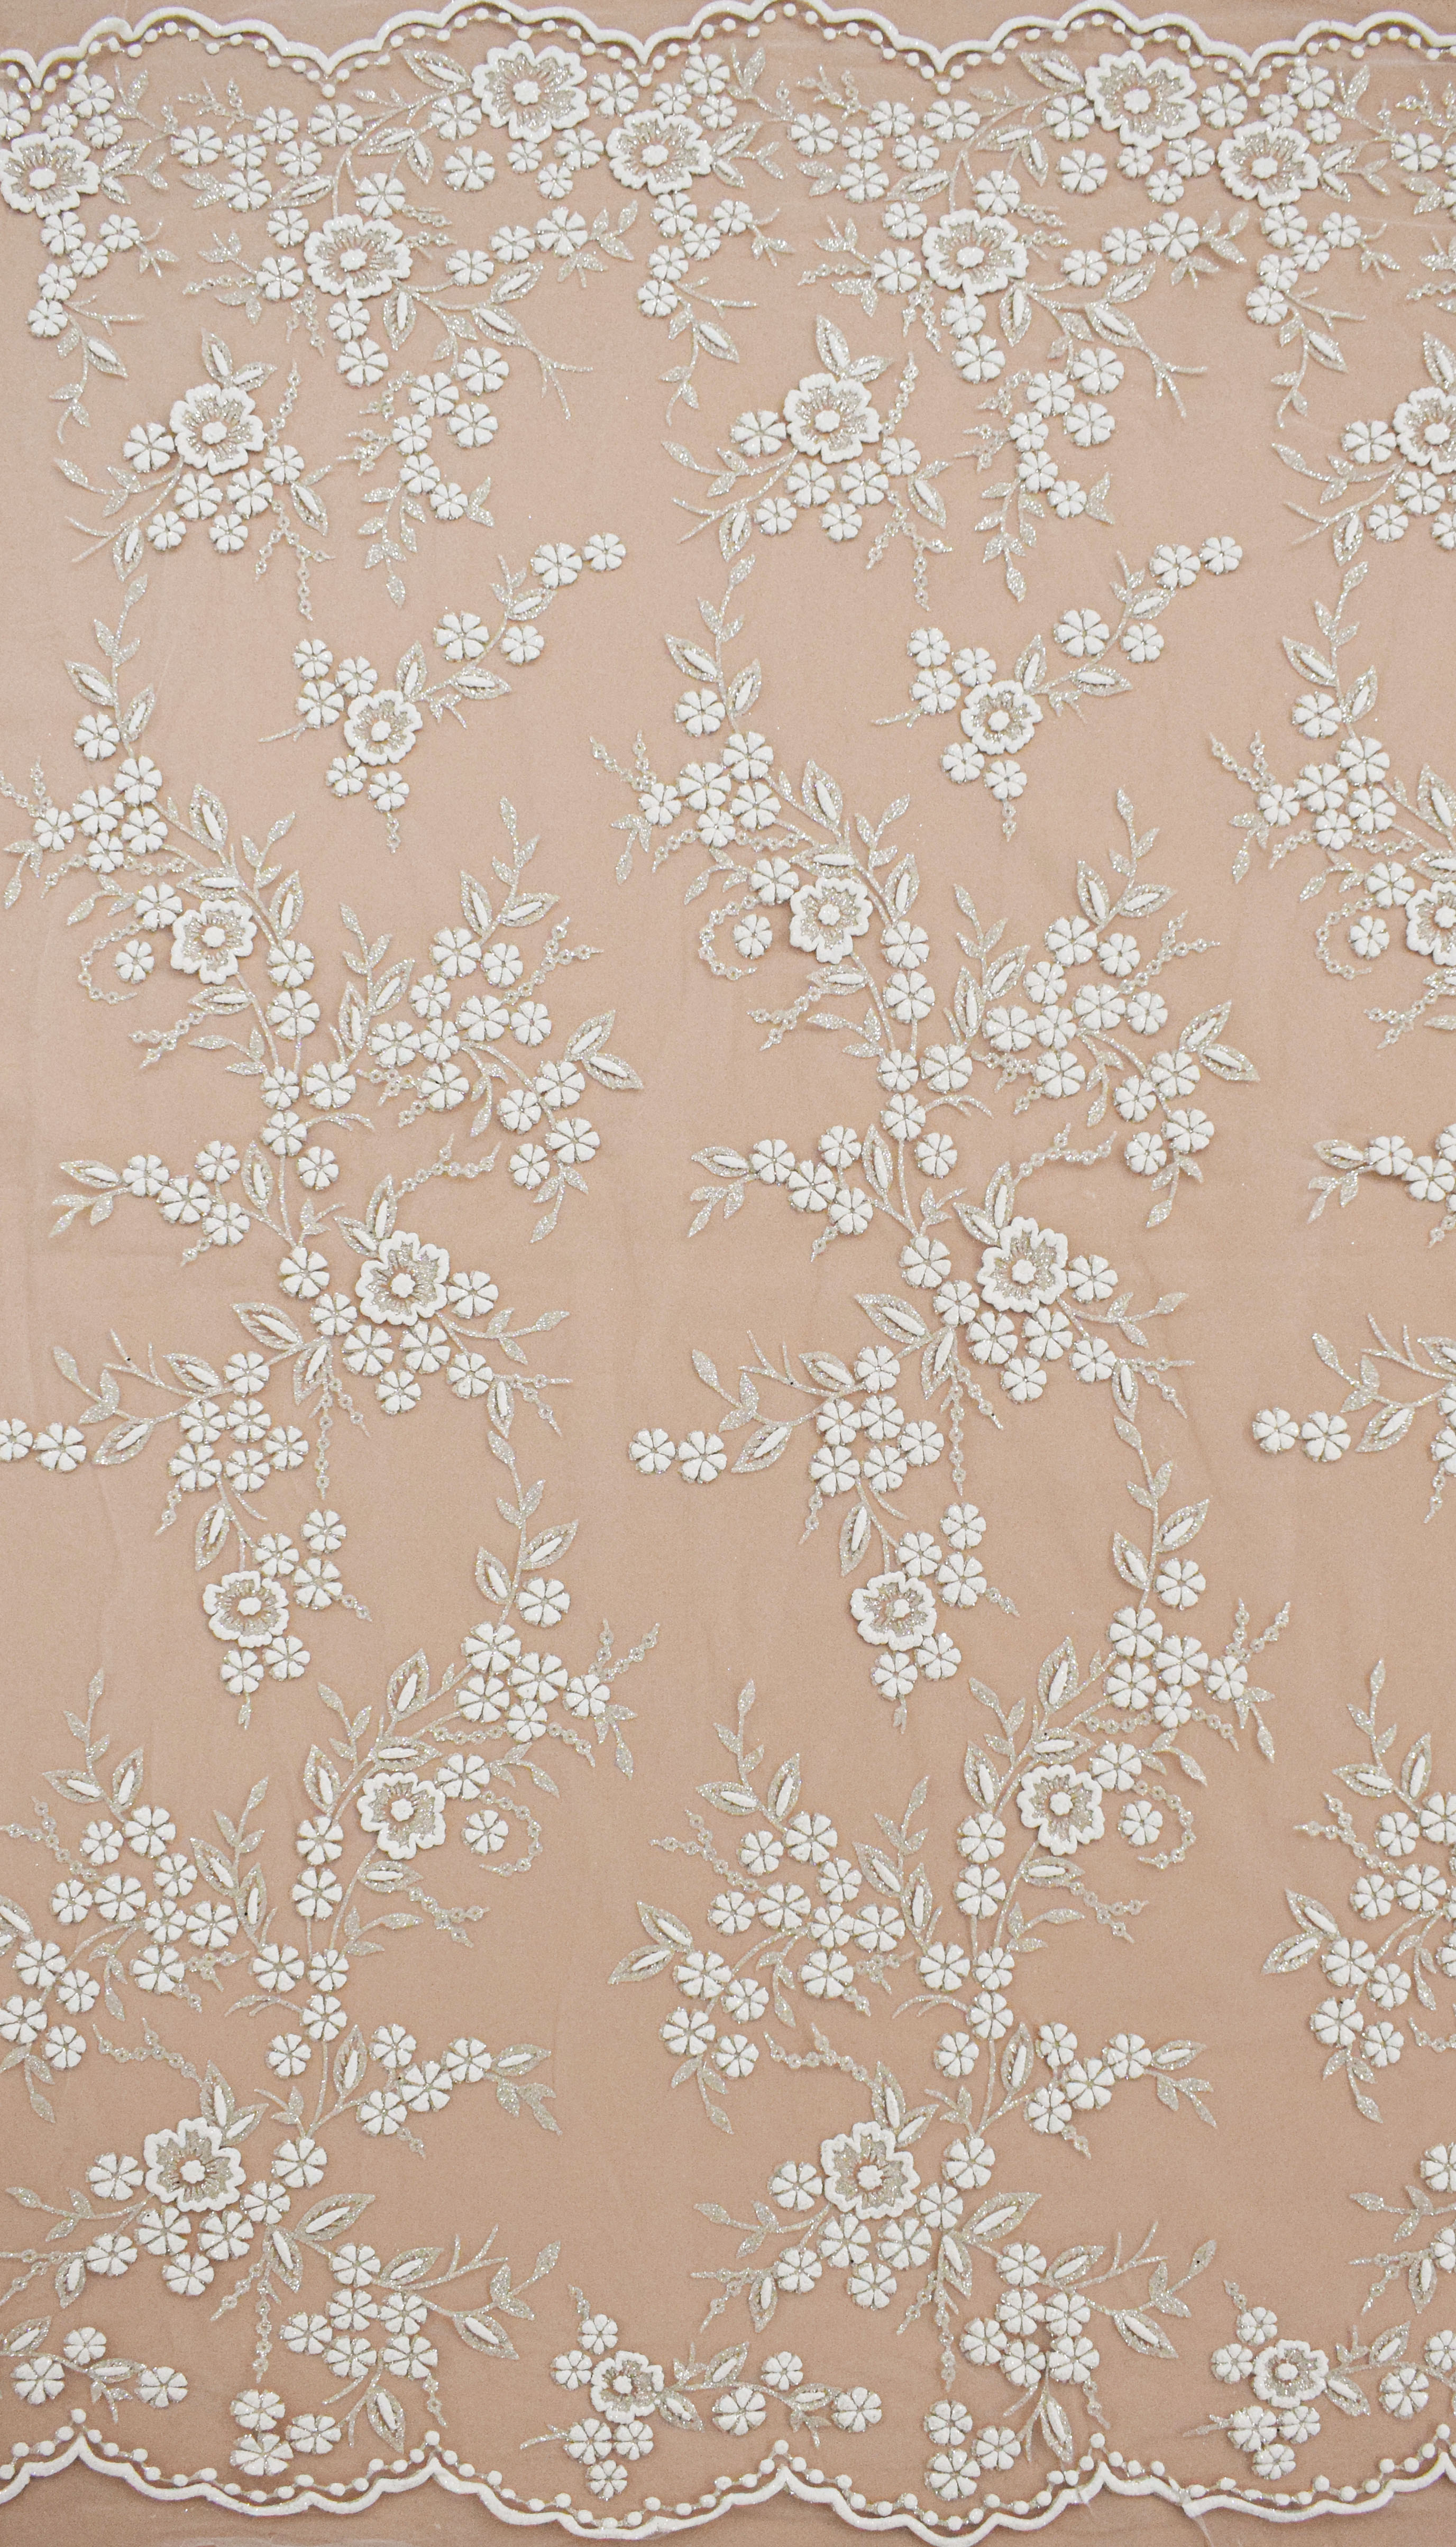 Fabric mesh: With glitter «AKN-559»